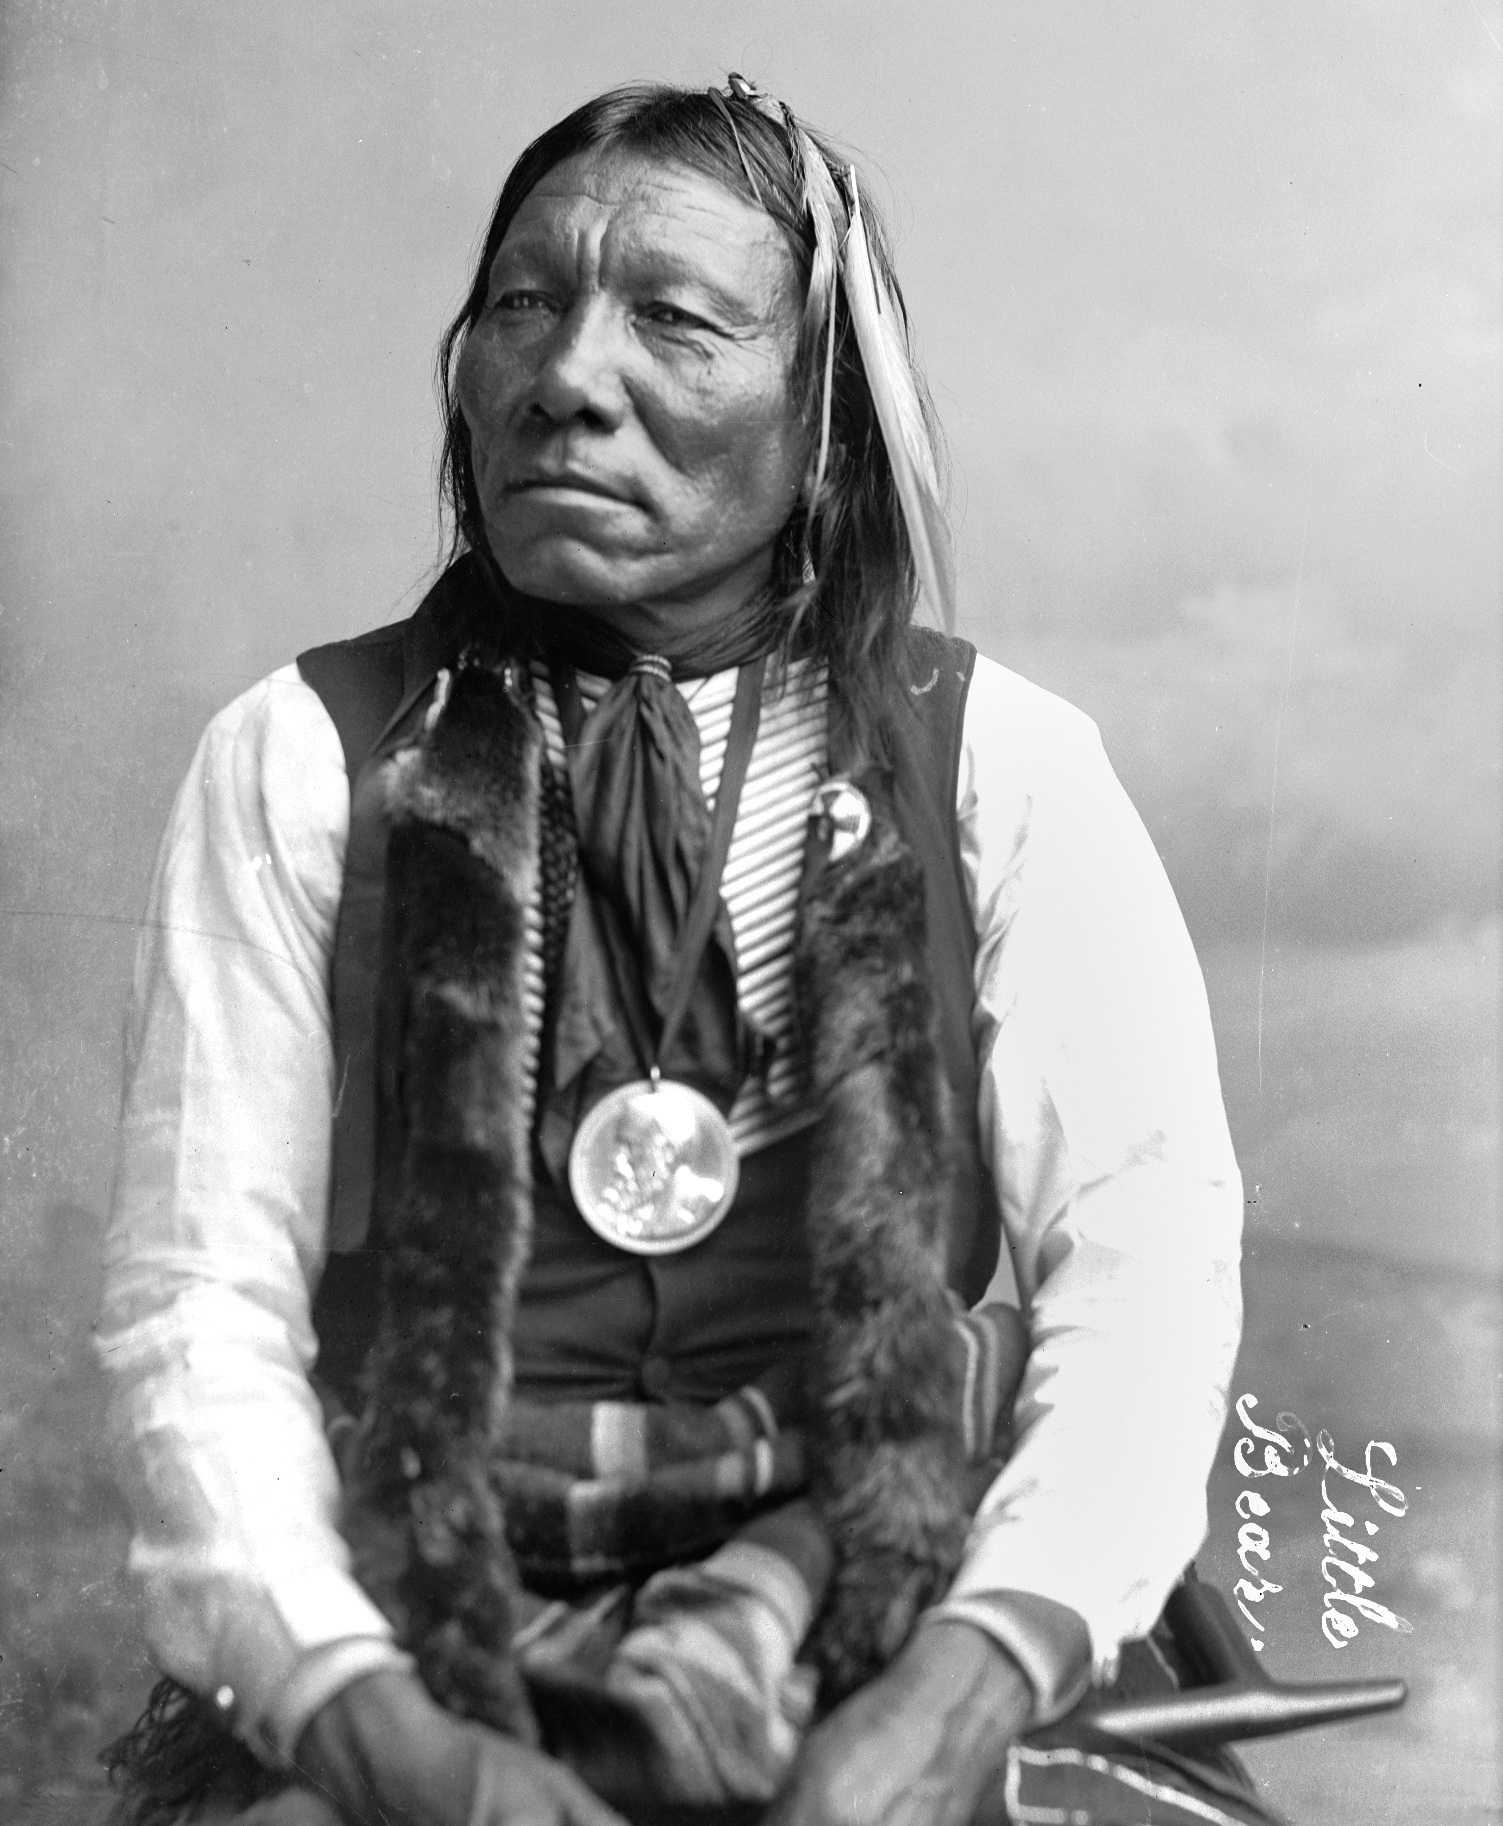 http://www.nps.gov/sand/learn/historyculture/images/Little-Bear-Sand-Creek-participant.jpg